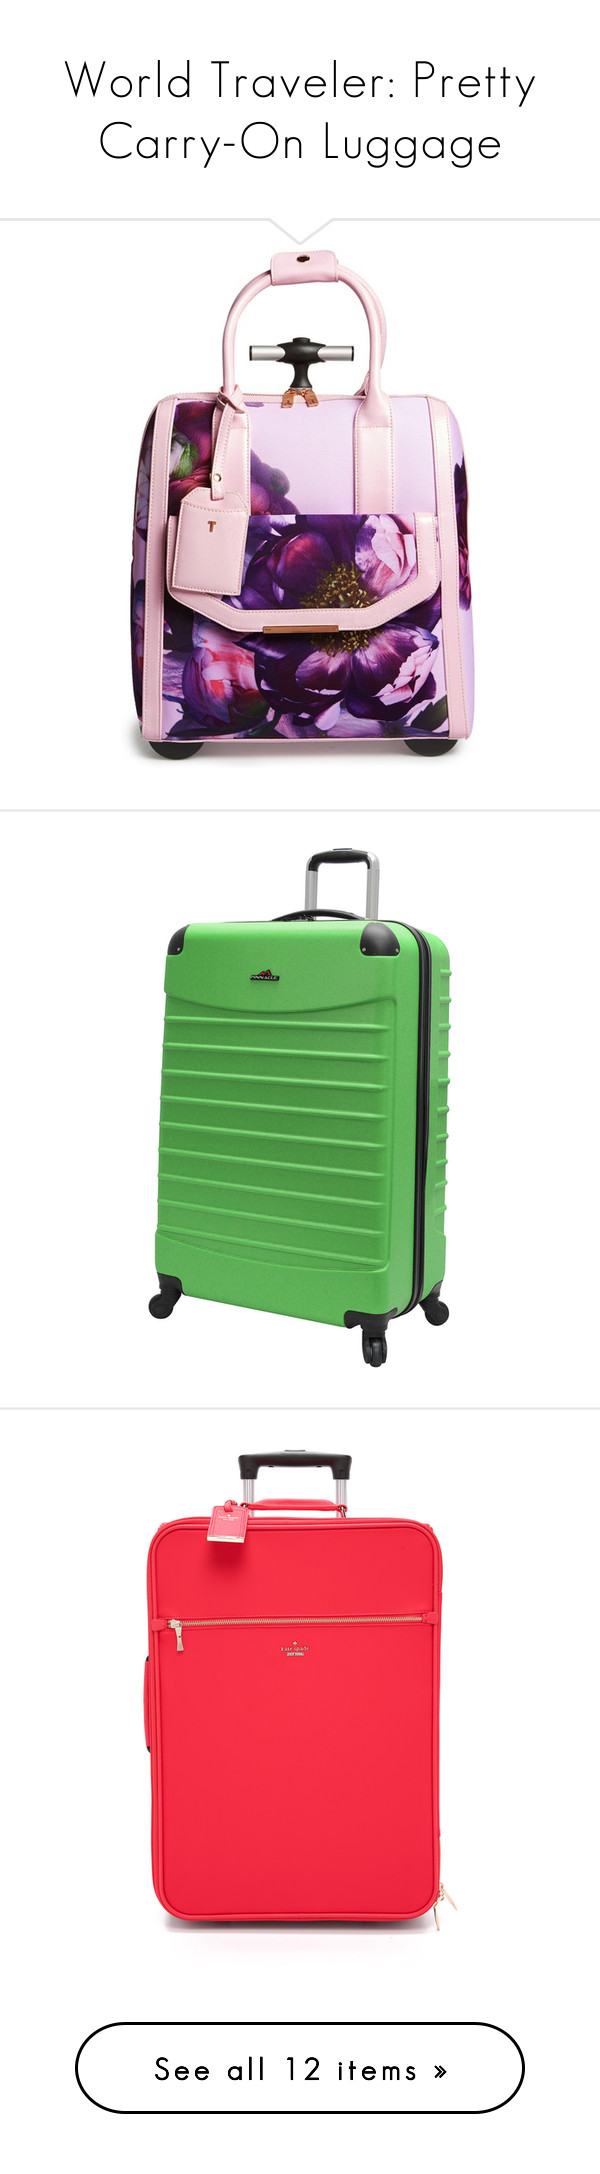 World Traveler: Pretty Carry-On Luggage